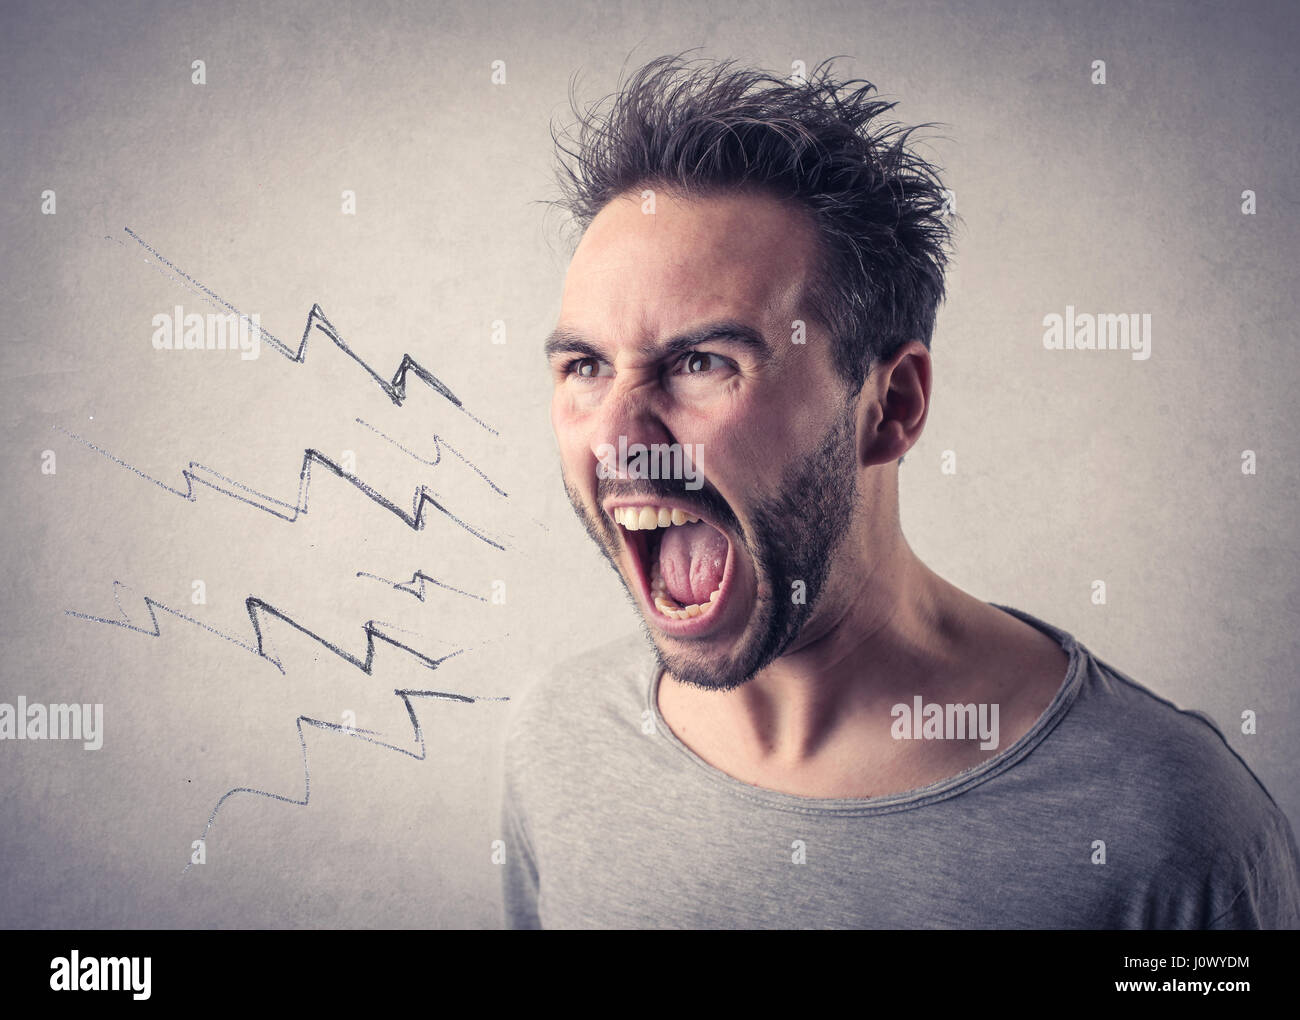 yelling concept stock photos yelling concept stock images alamy